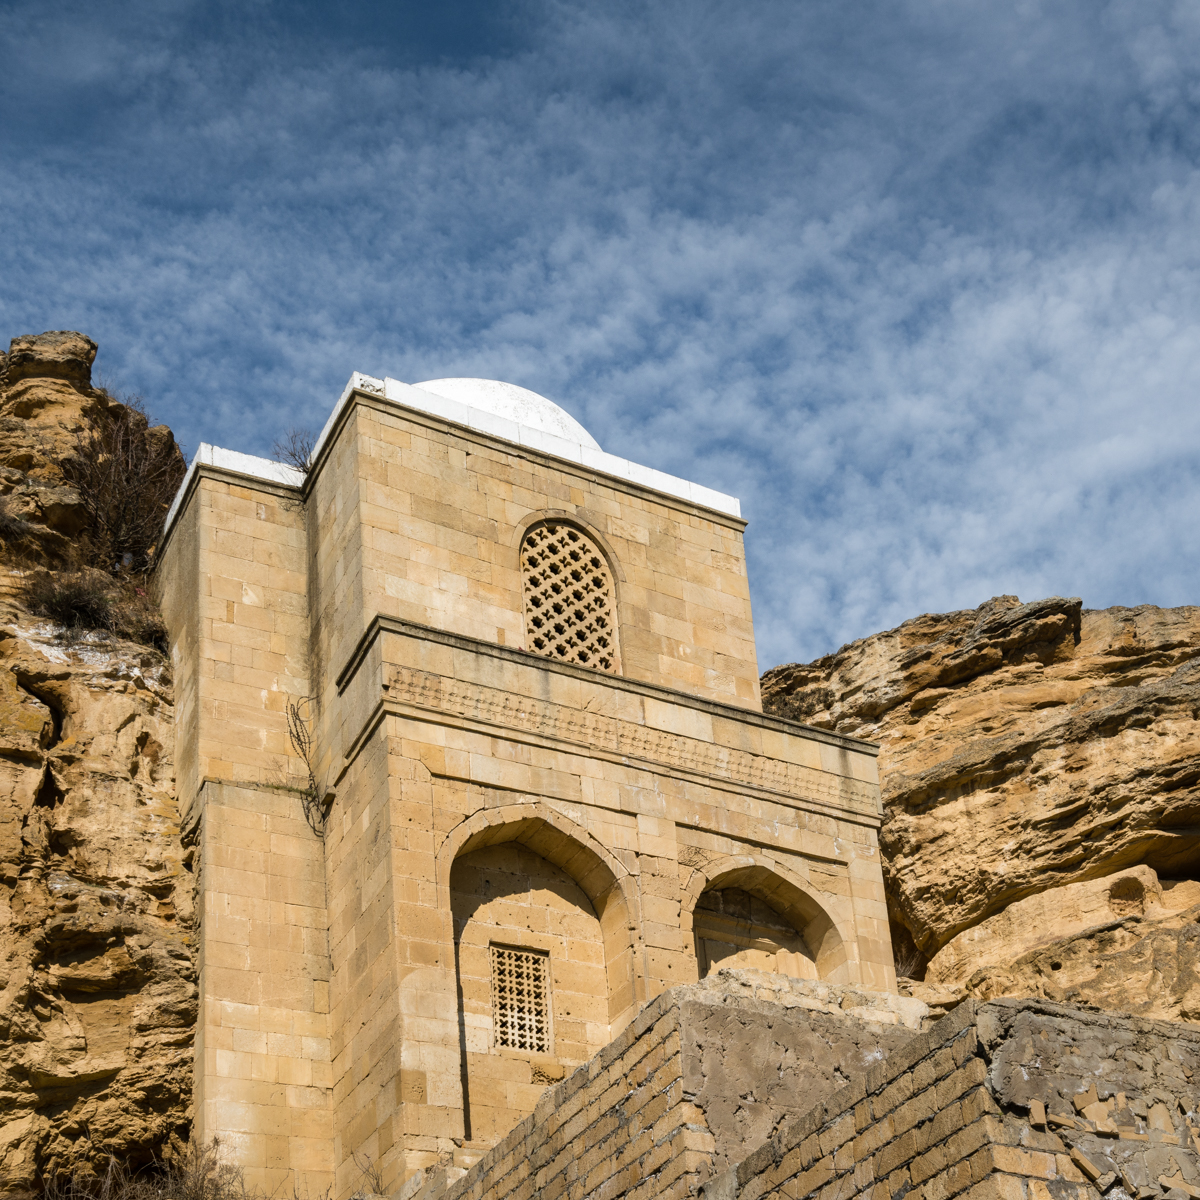 Looking up at a mosque built into a cliff